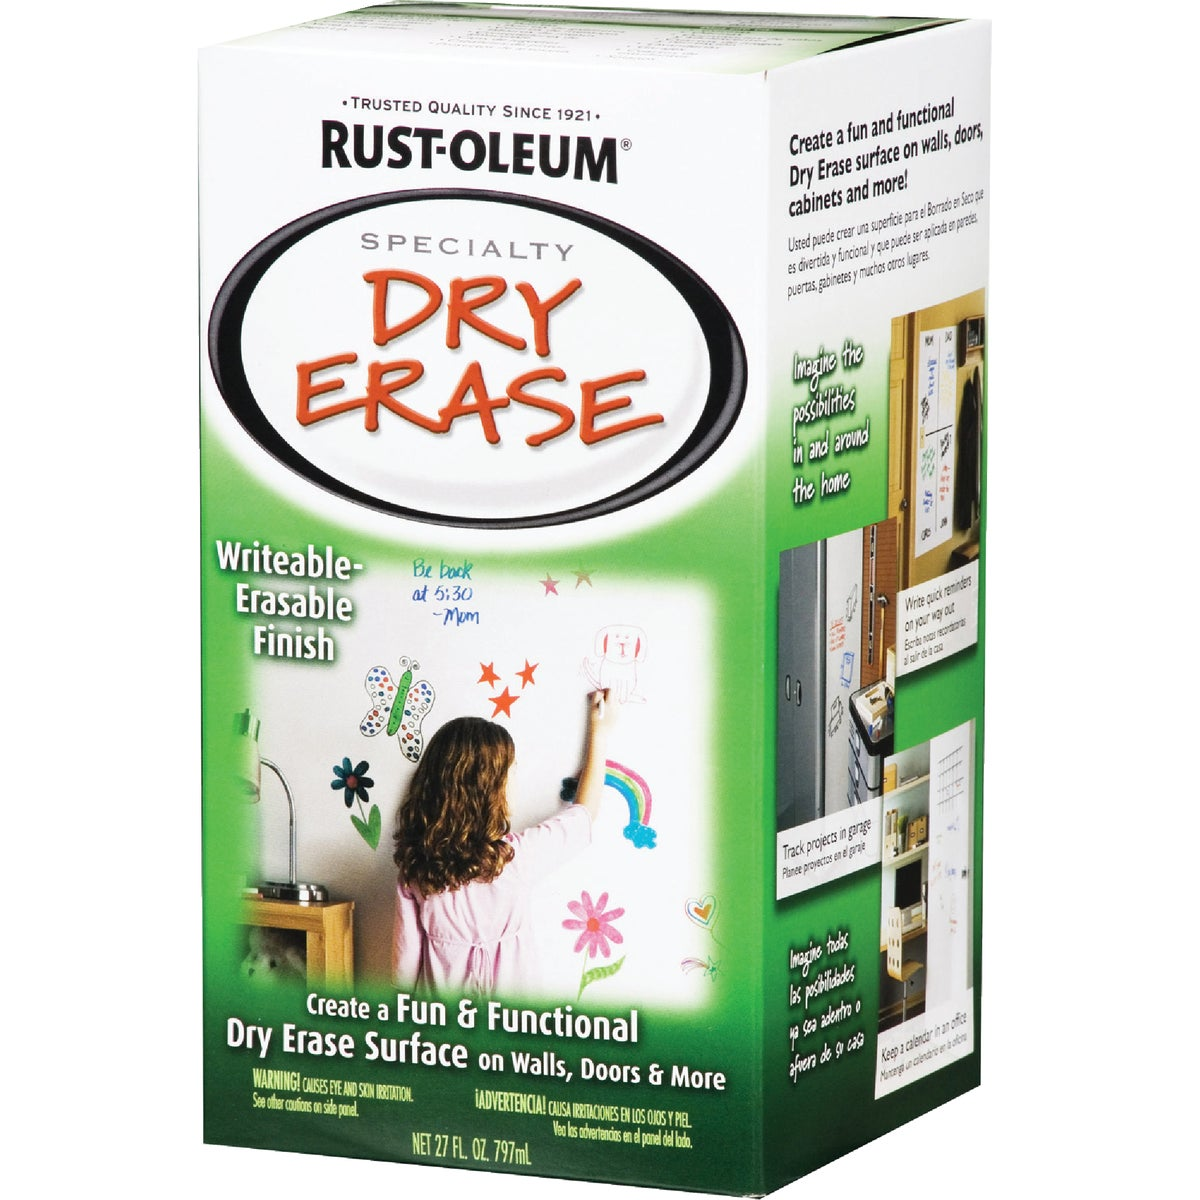 DRY ERASE KIT - 241140 by Rustoleum